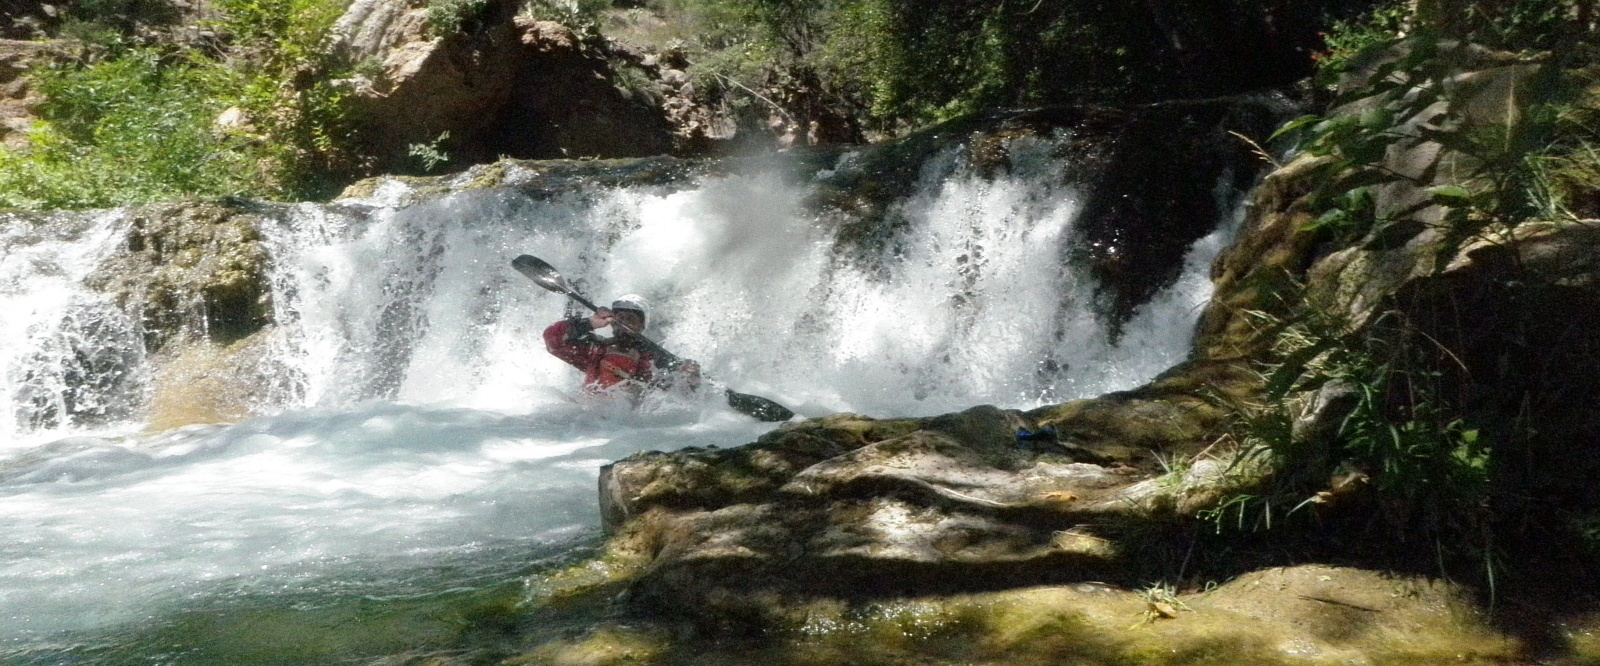 Click image for larger version  Name:fossil creek 169.jpg Views:162 Size:523.0 KB ID:3300